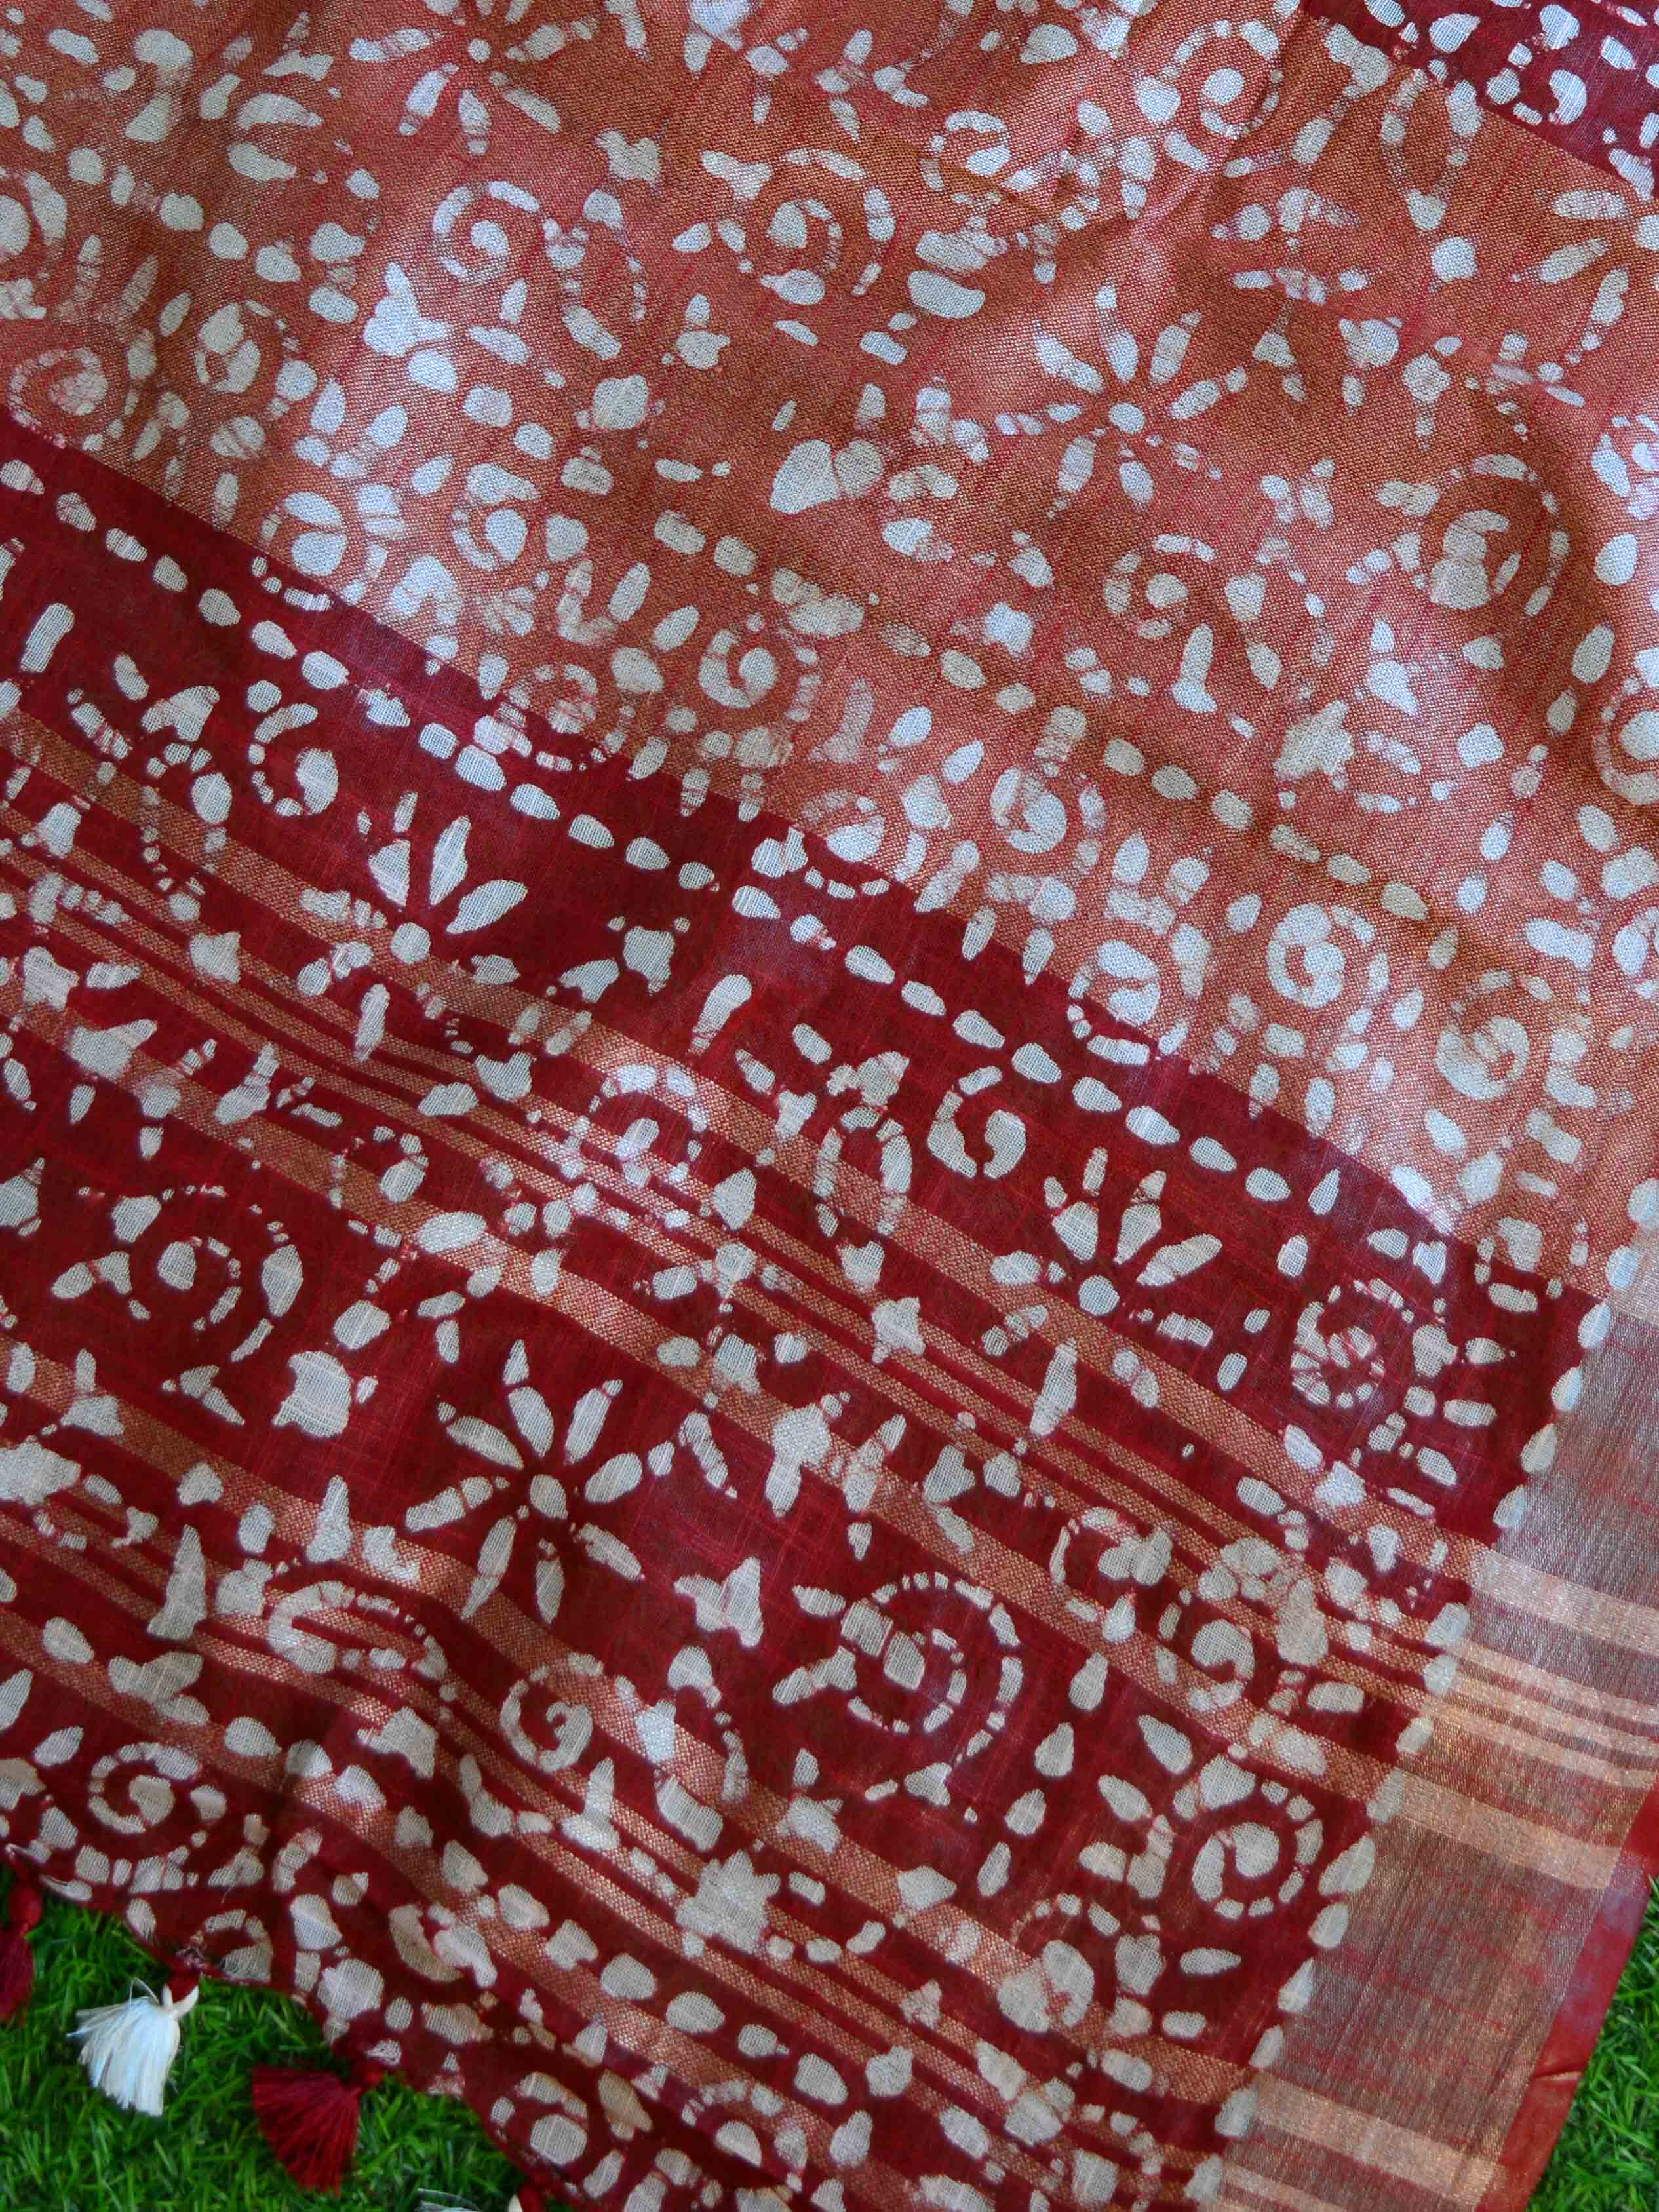 Bhagalpur Handloom Pure Linen Cotton Hand-Dyed Batik Pattern Saree-Rust & Red